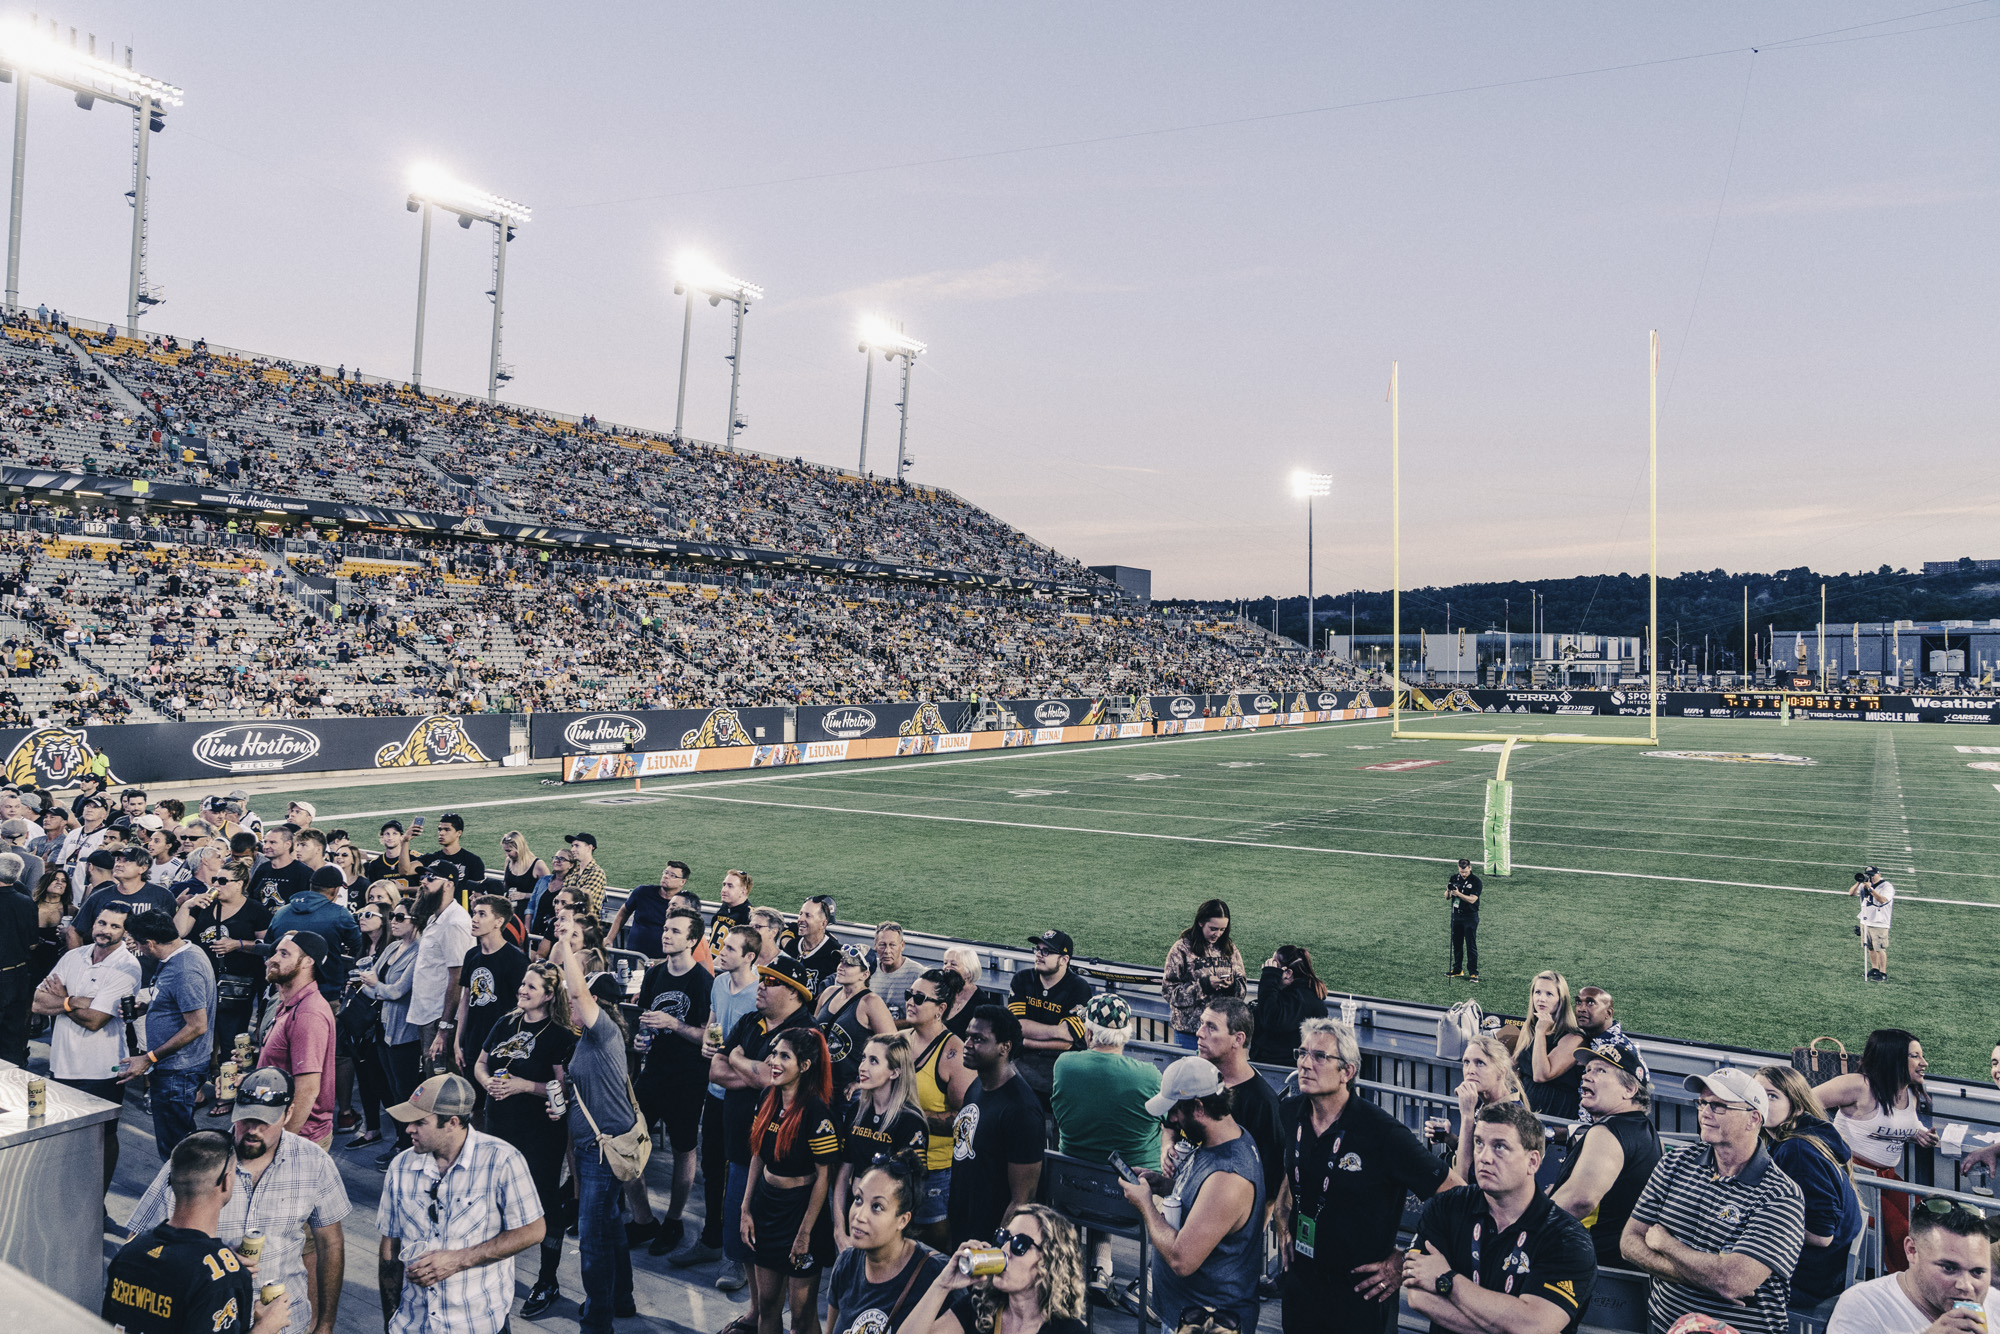 The_Beaches_Hamilton_Ticats_Born_Razed_12.jpg